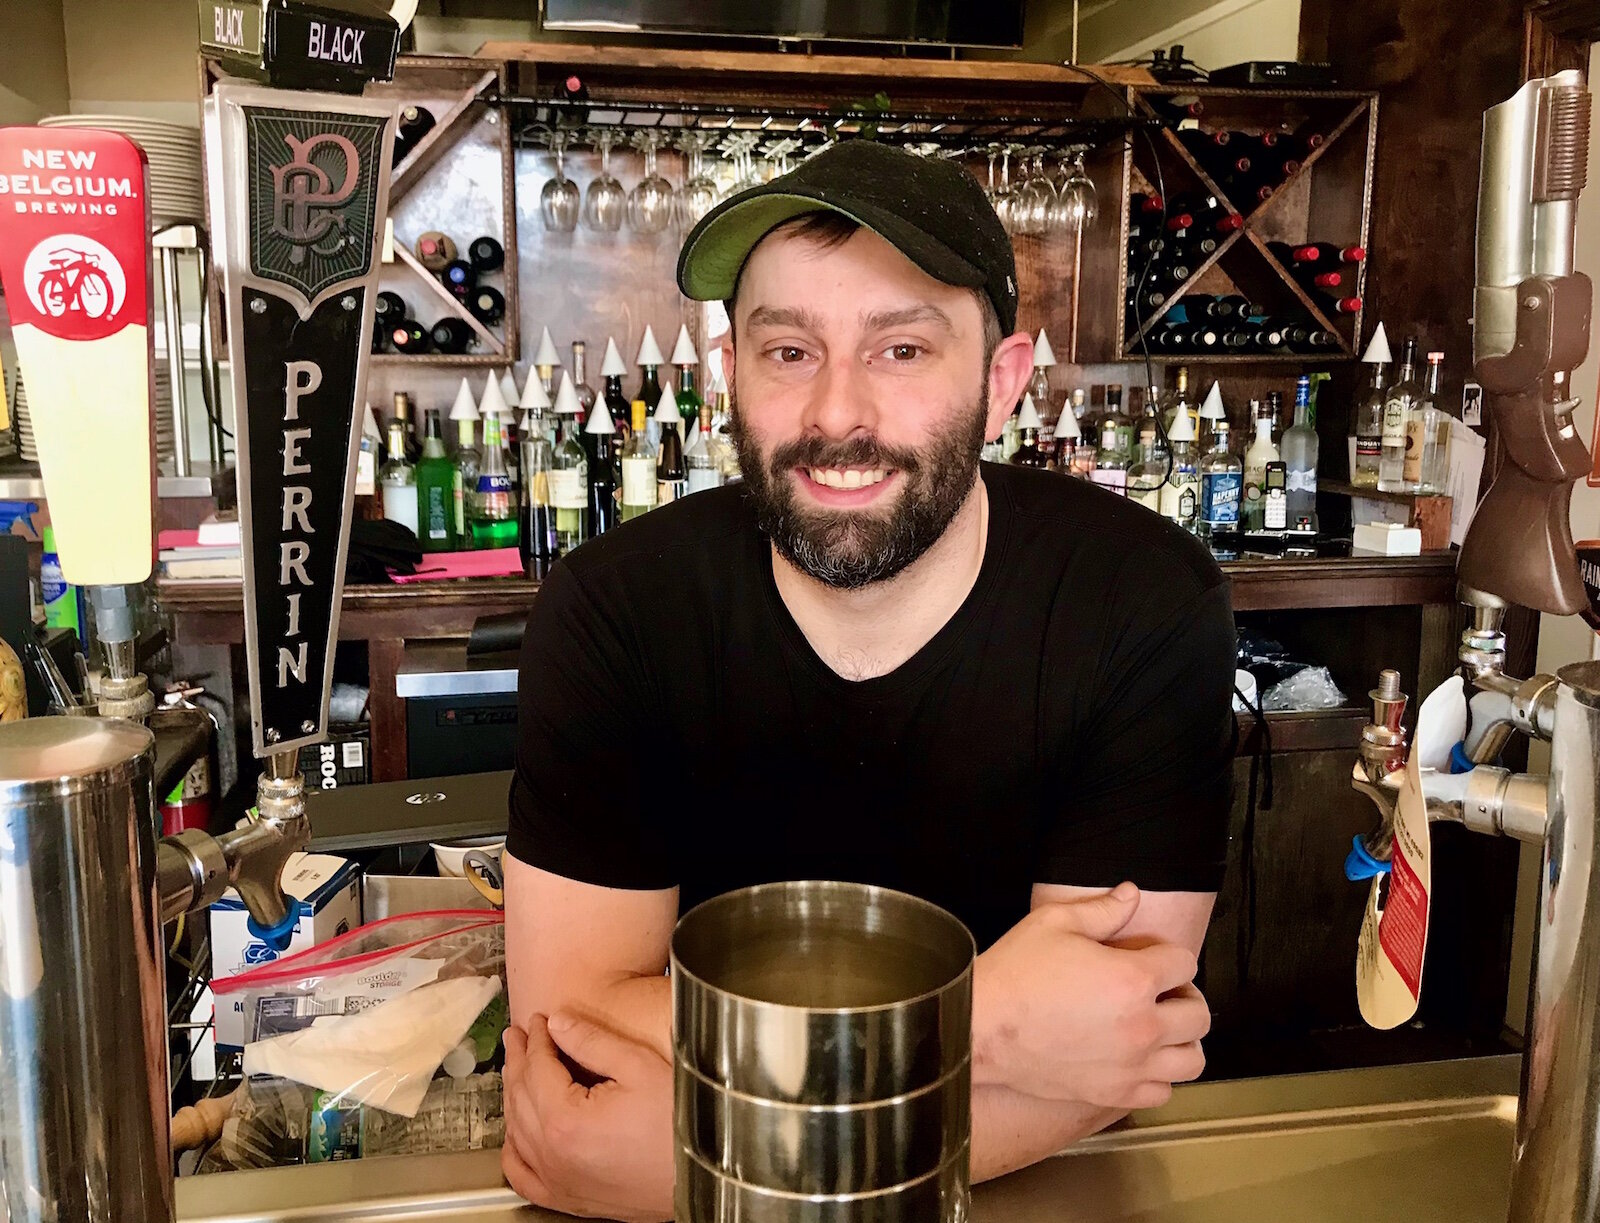 Paul Comensoli, who is head chef of his family's Italian bistro, says any small business that survived closings and slowdowns in 2020 is likely to be optimistic about the year ahead.